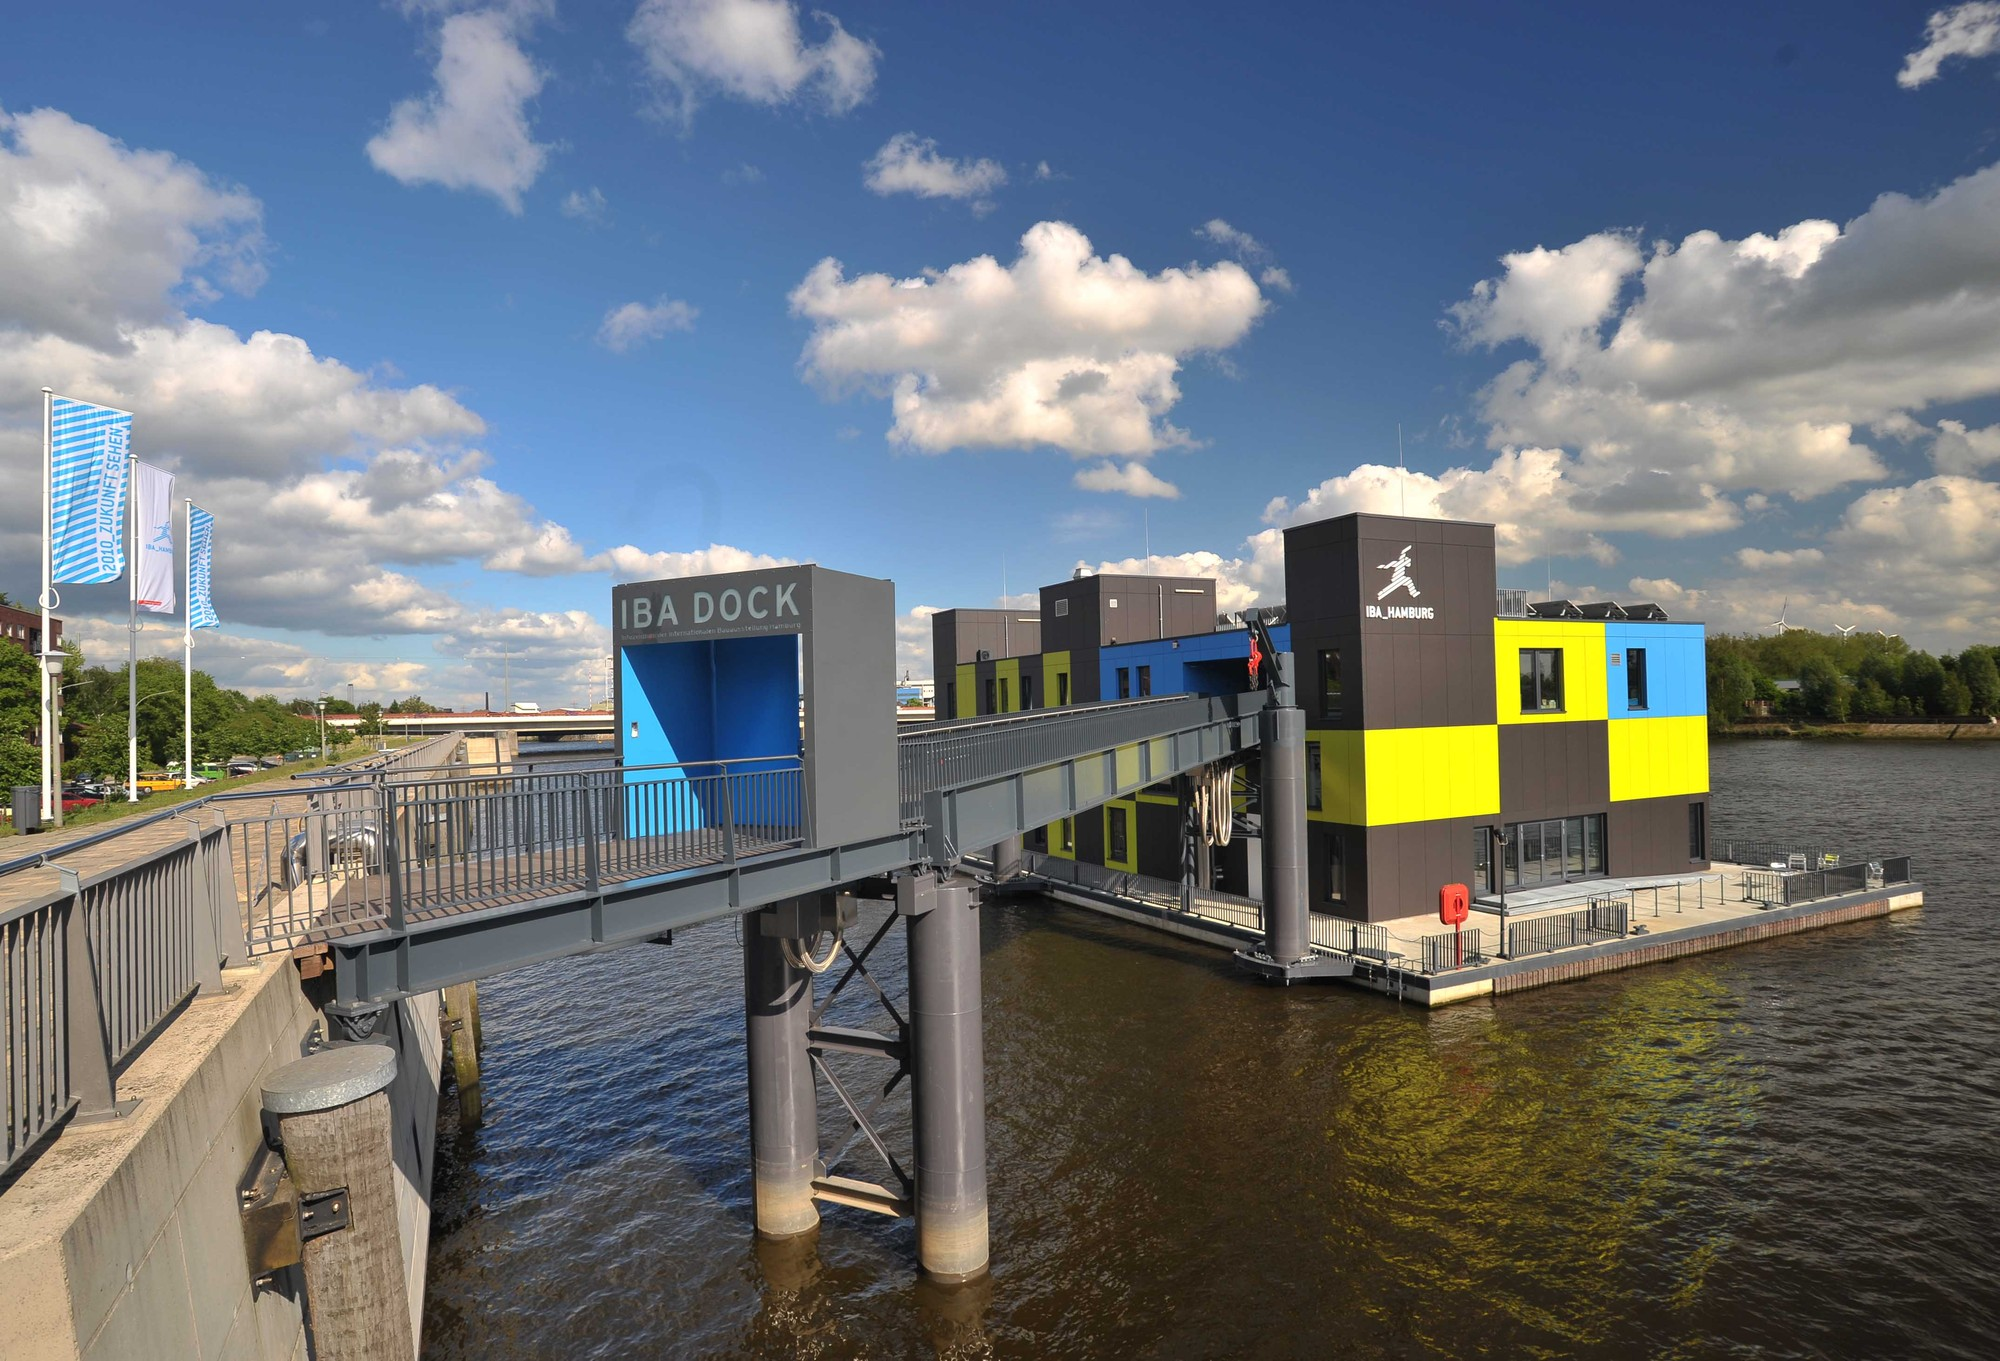 Iba Dock / Architech - Architecture and Technology